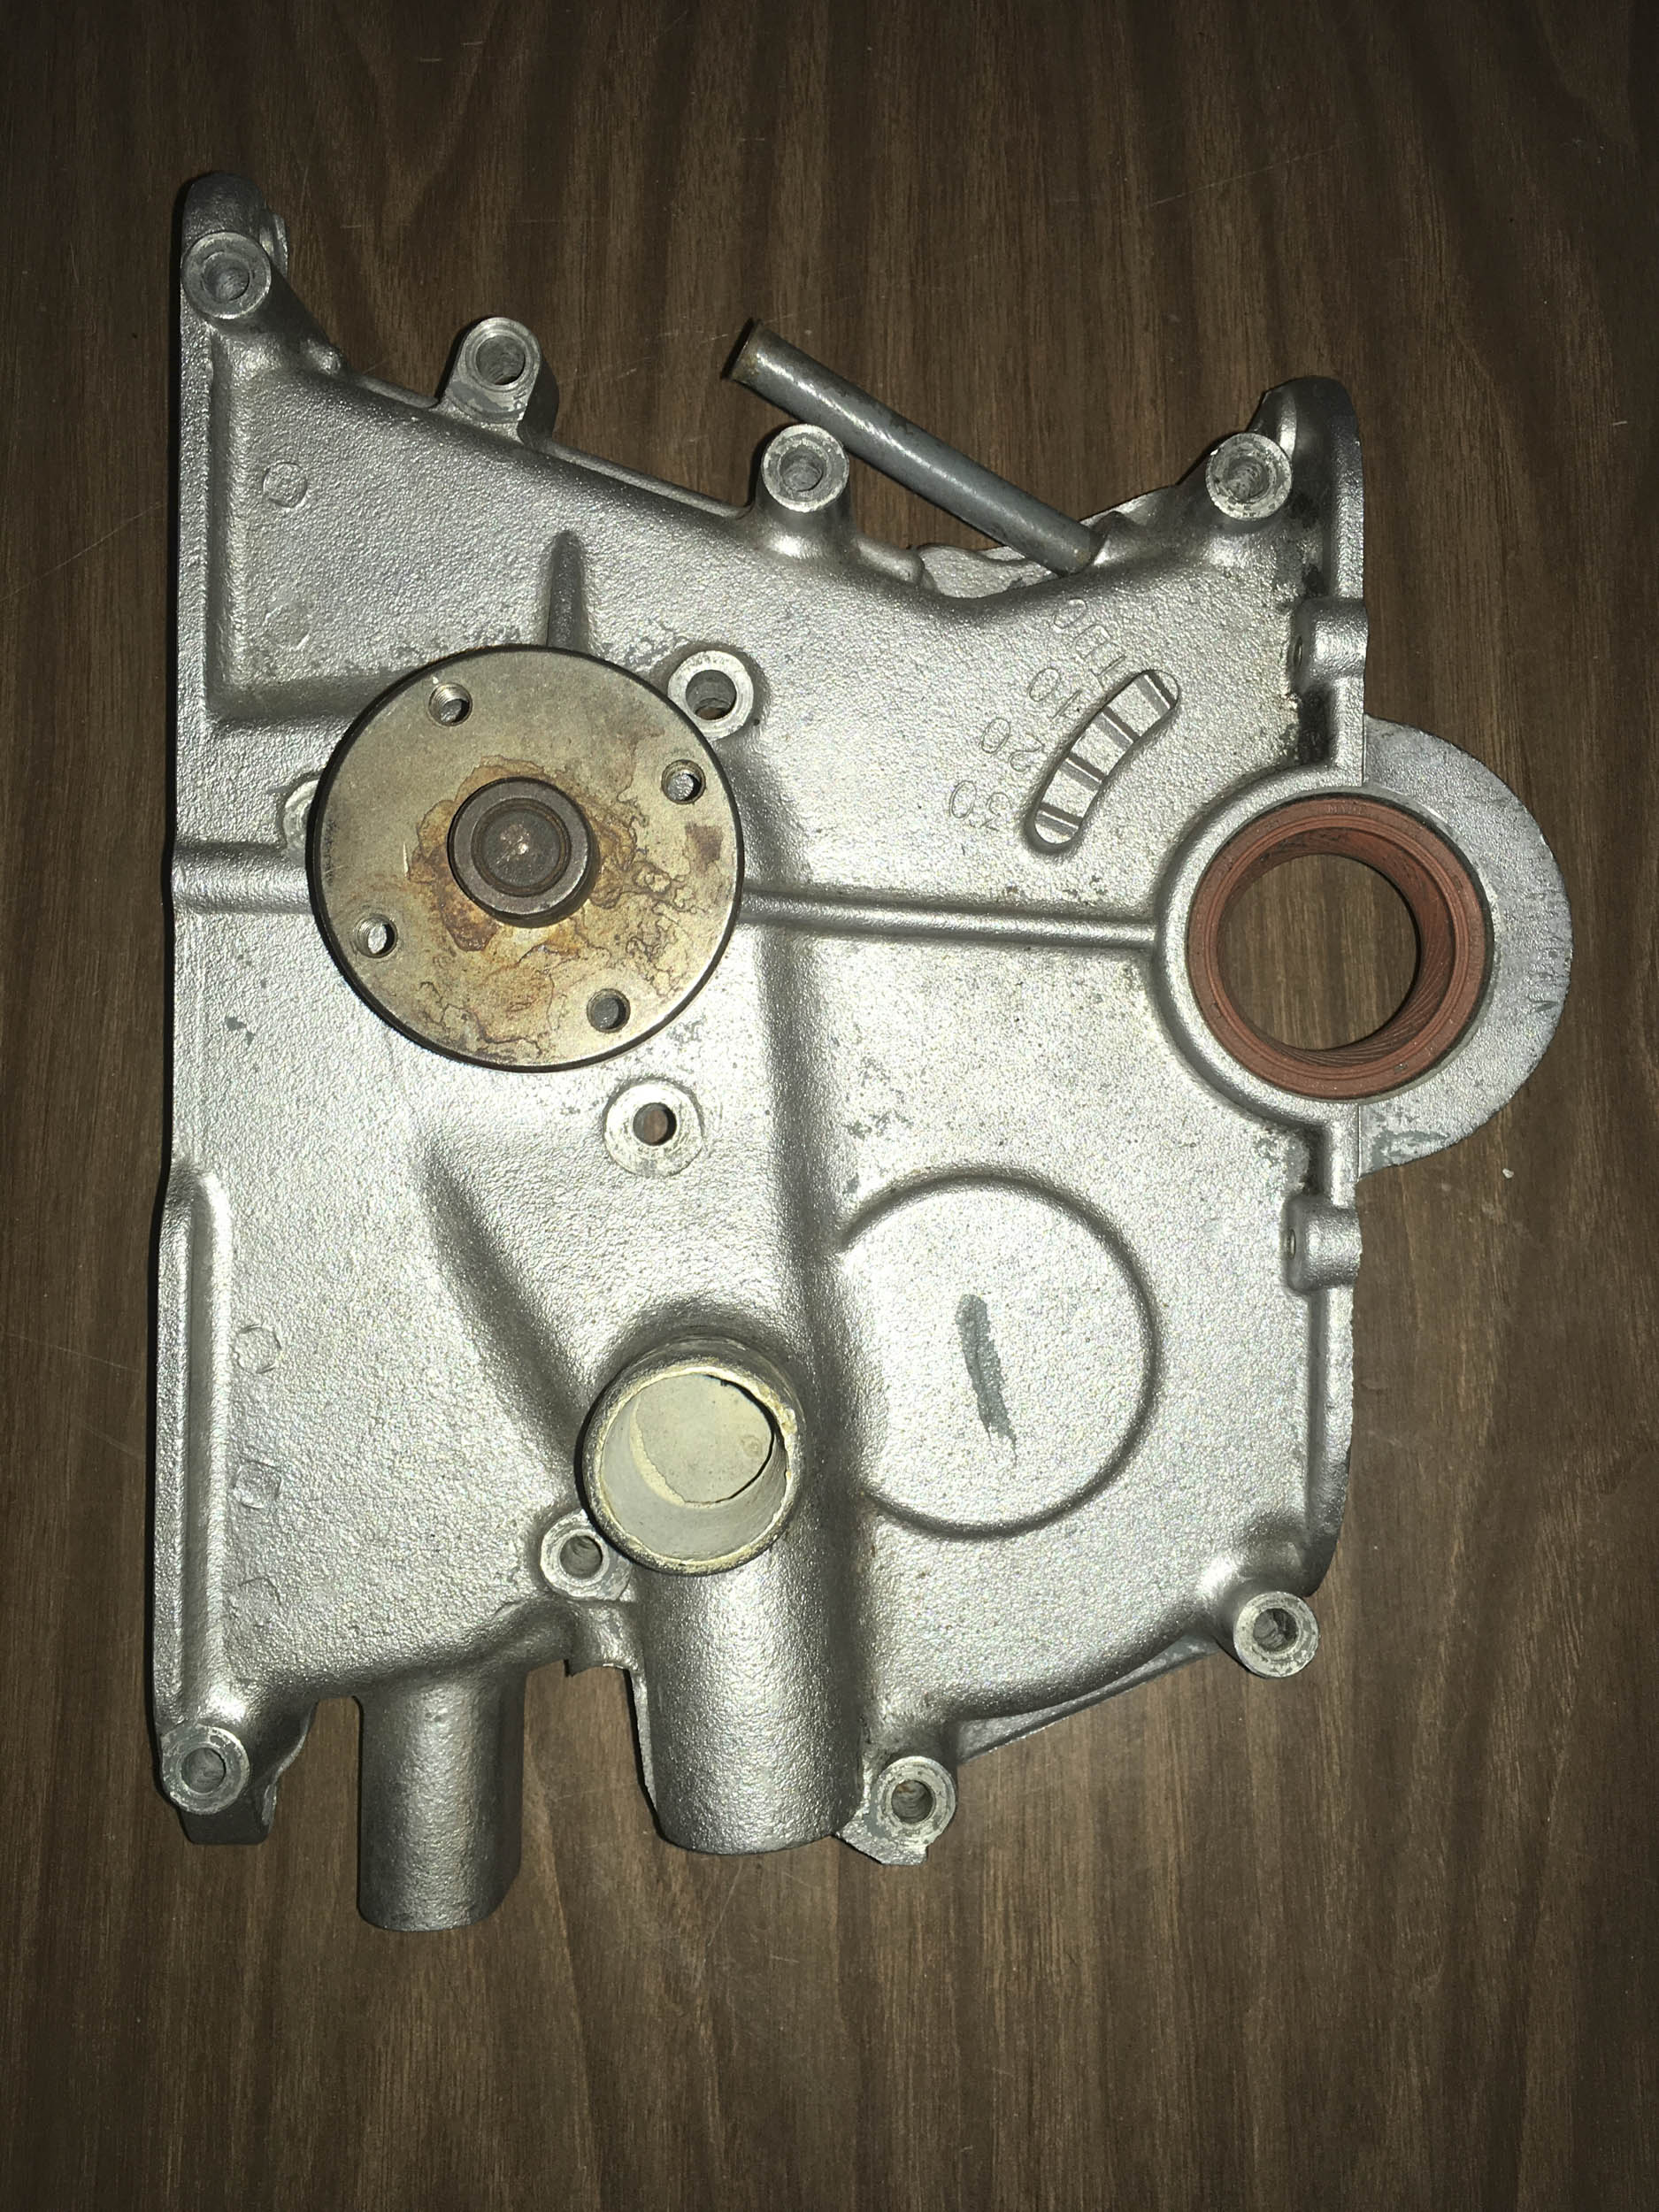 This shows how the water pump on the Lotus-Ford Twin-Cam engine is integrated into the timing cover instead of bolted into it, as it is on most cars.